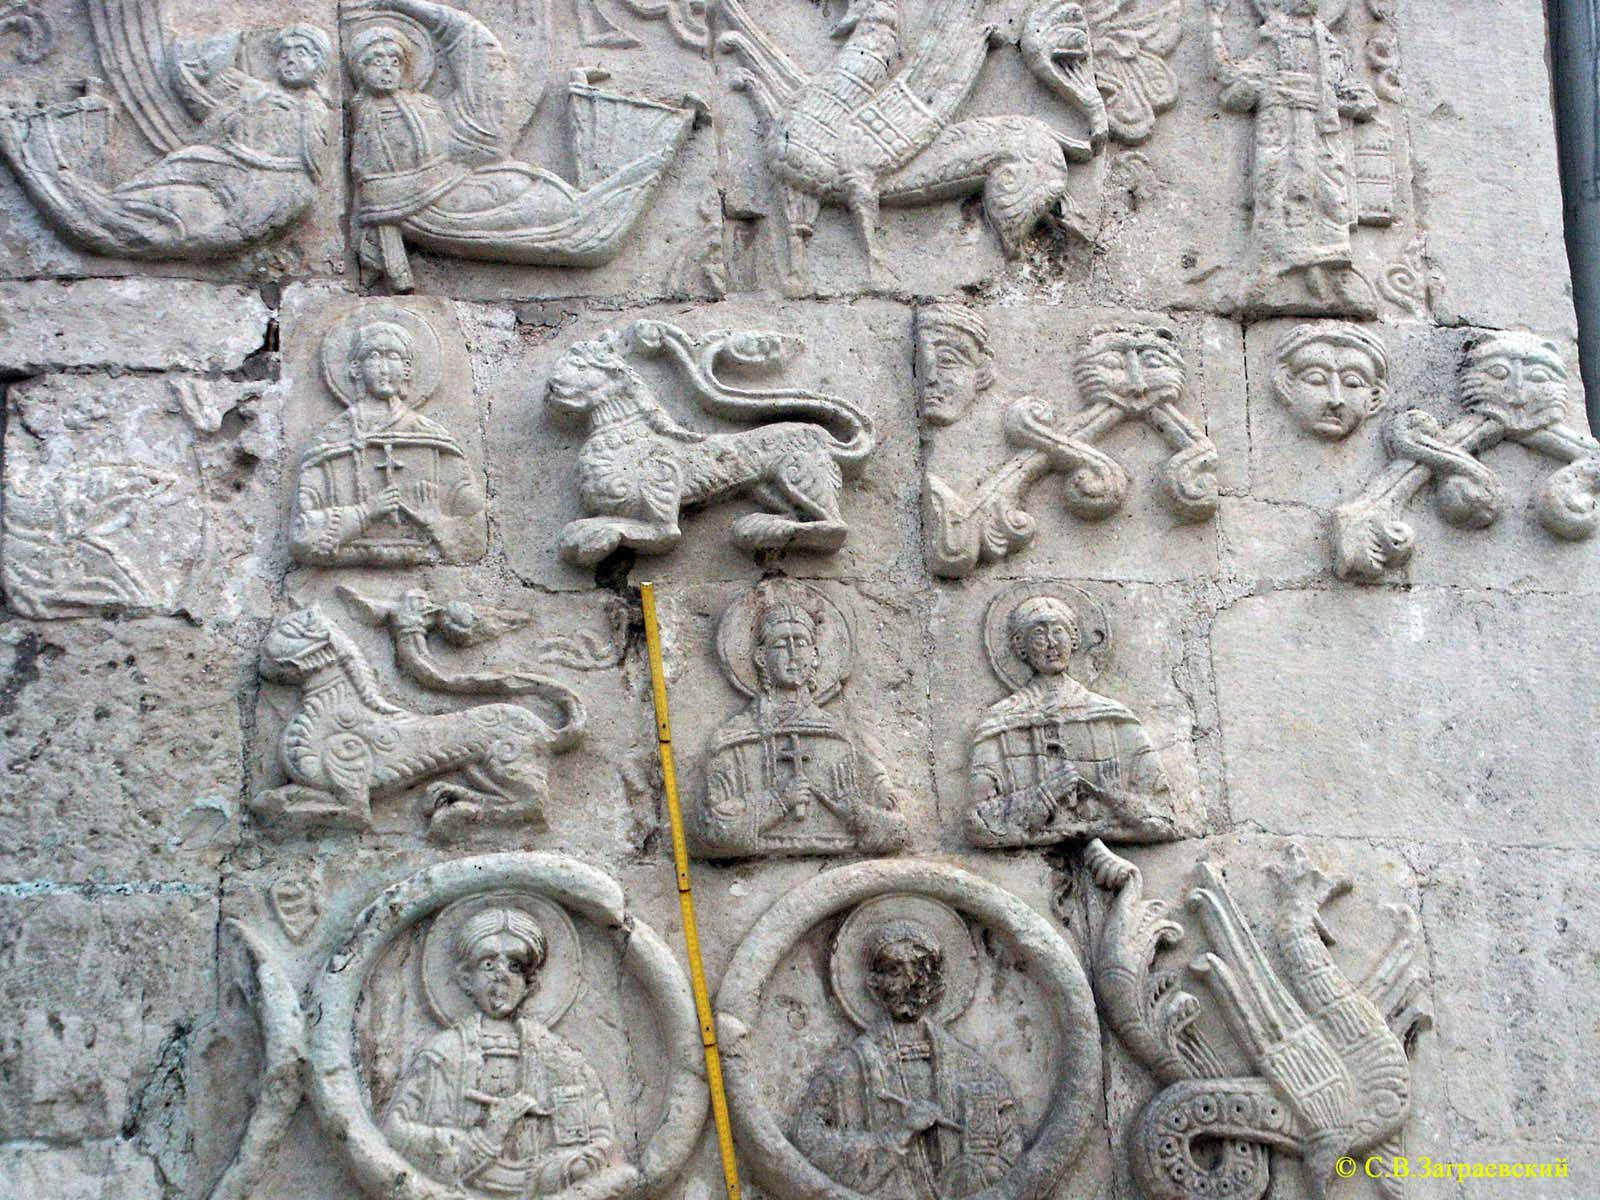 G white stone carvings of ancient